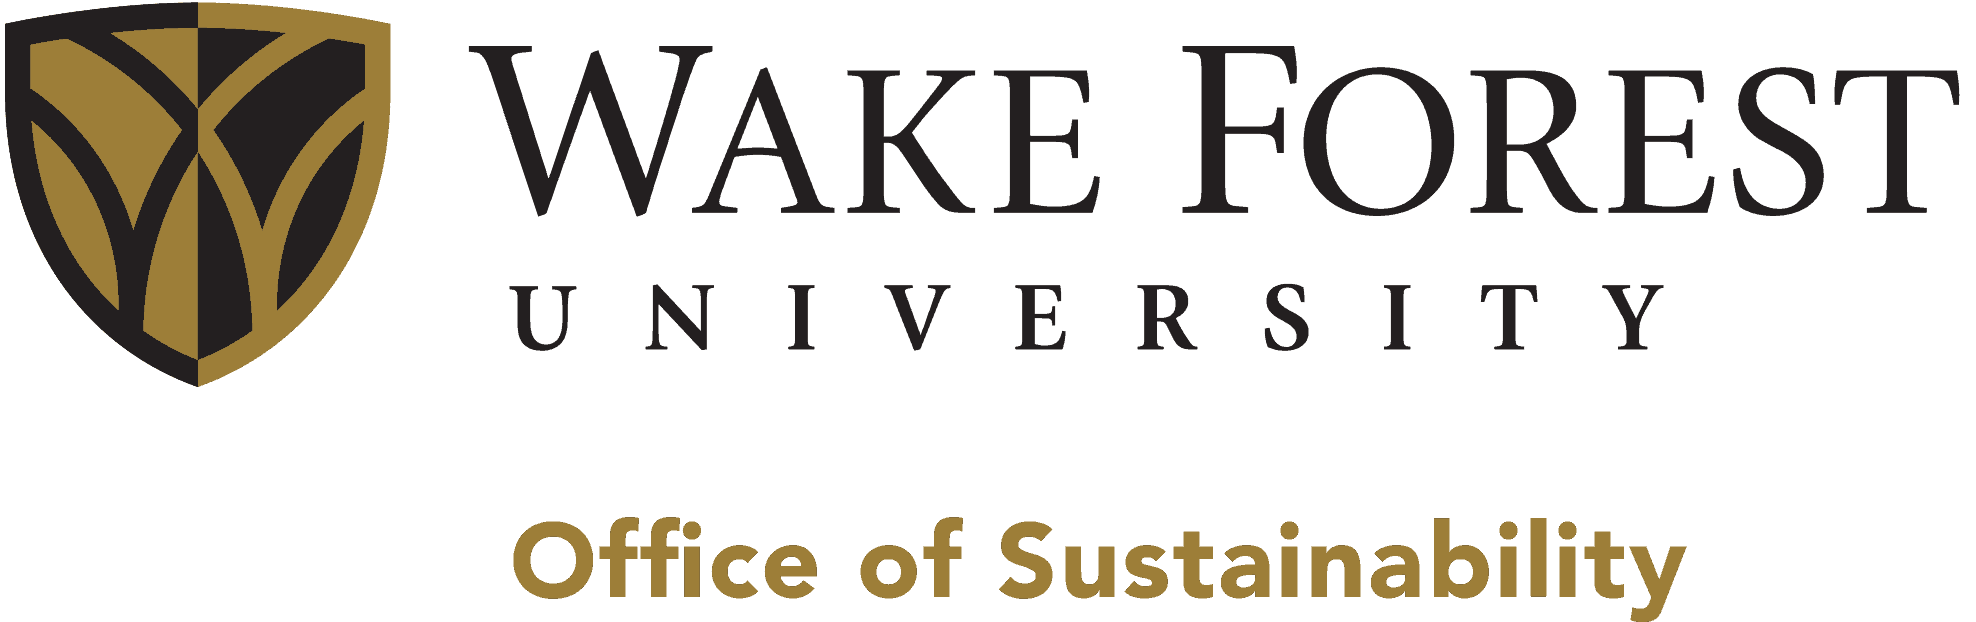 Sustainability at Wake Forest Logo